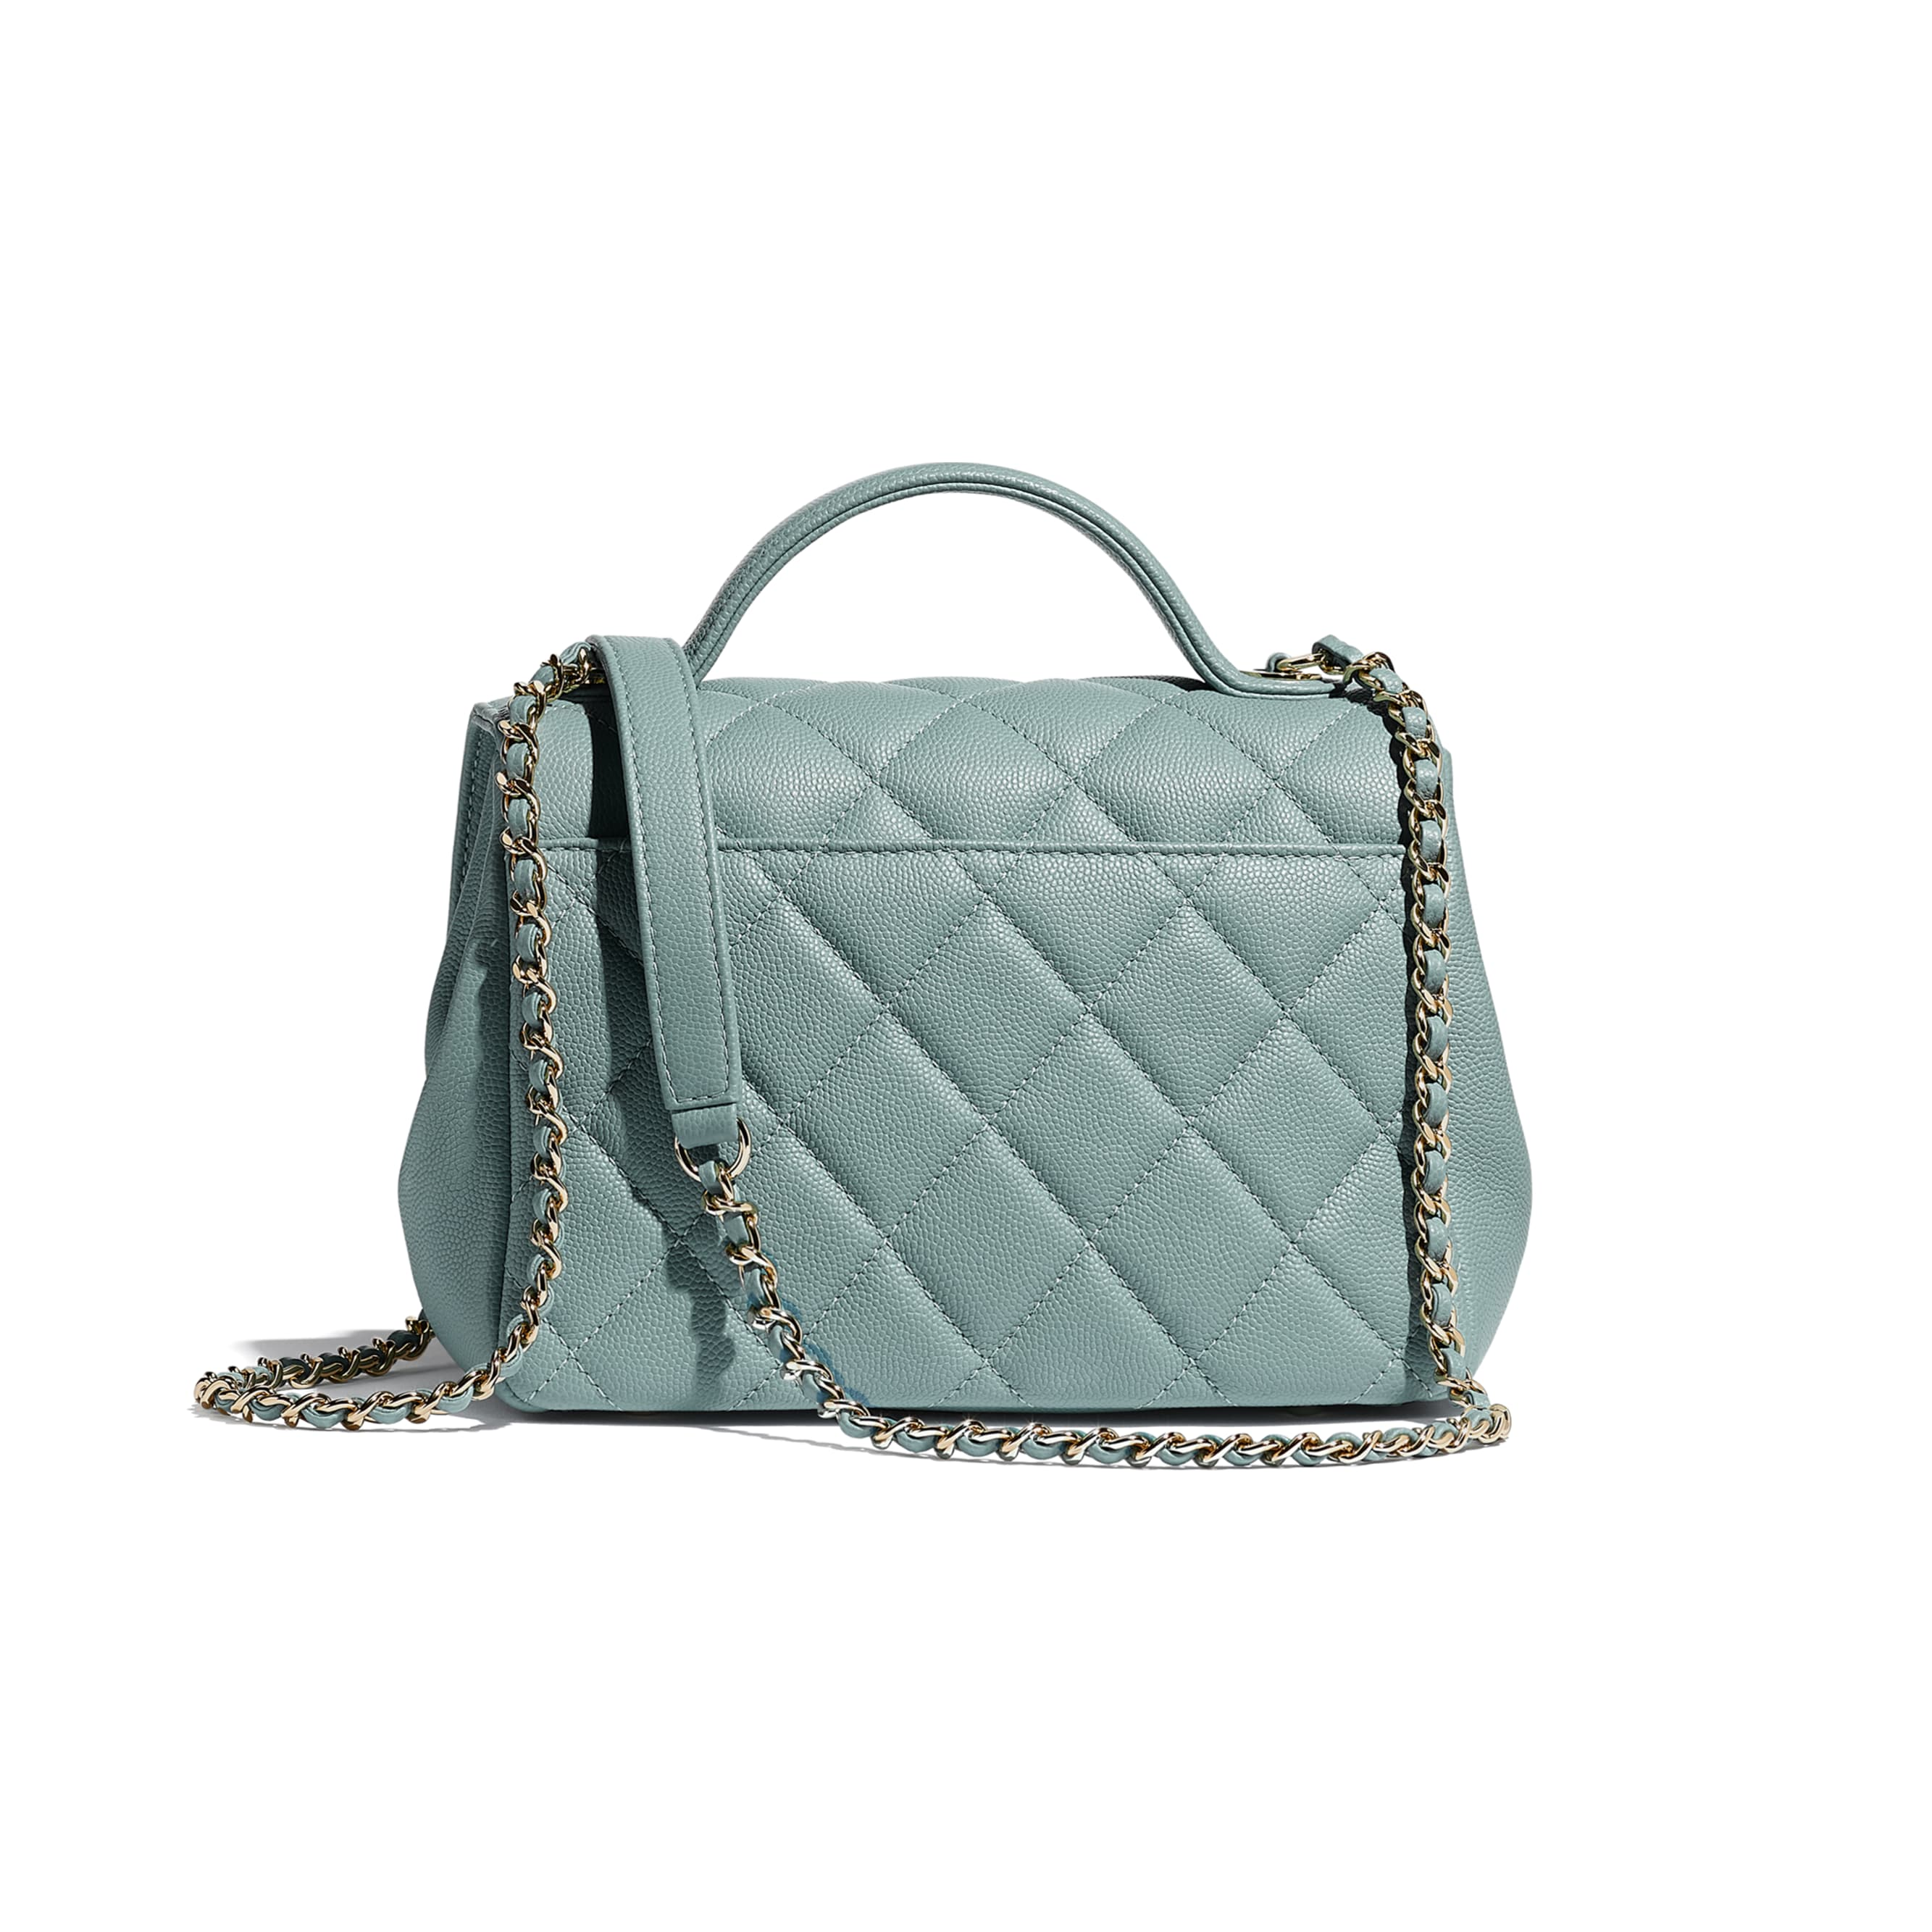 Small Flap Bag With Top Handle - Blue - Grained Calfskin & Gold-Tone Metal - CHANEL - Alternative view - see standard sized version